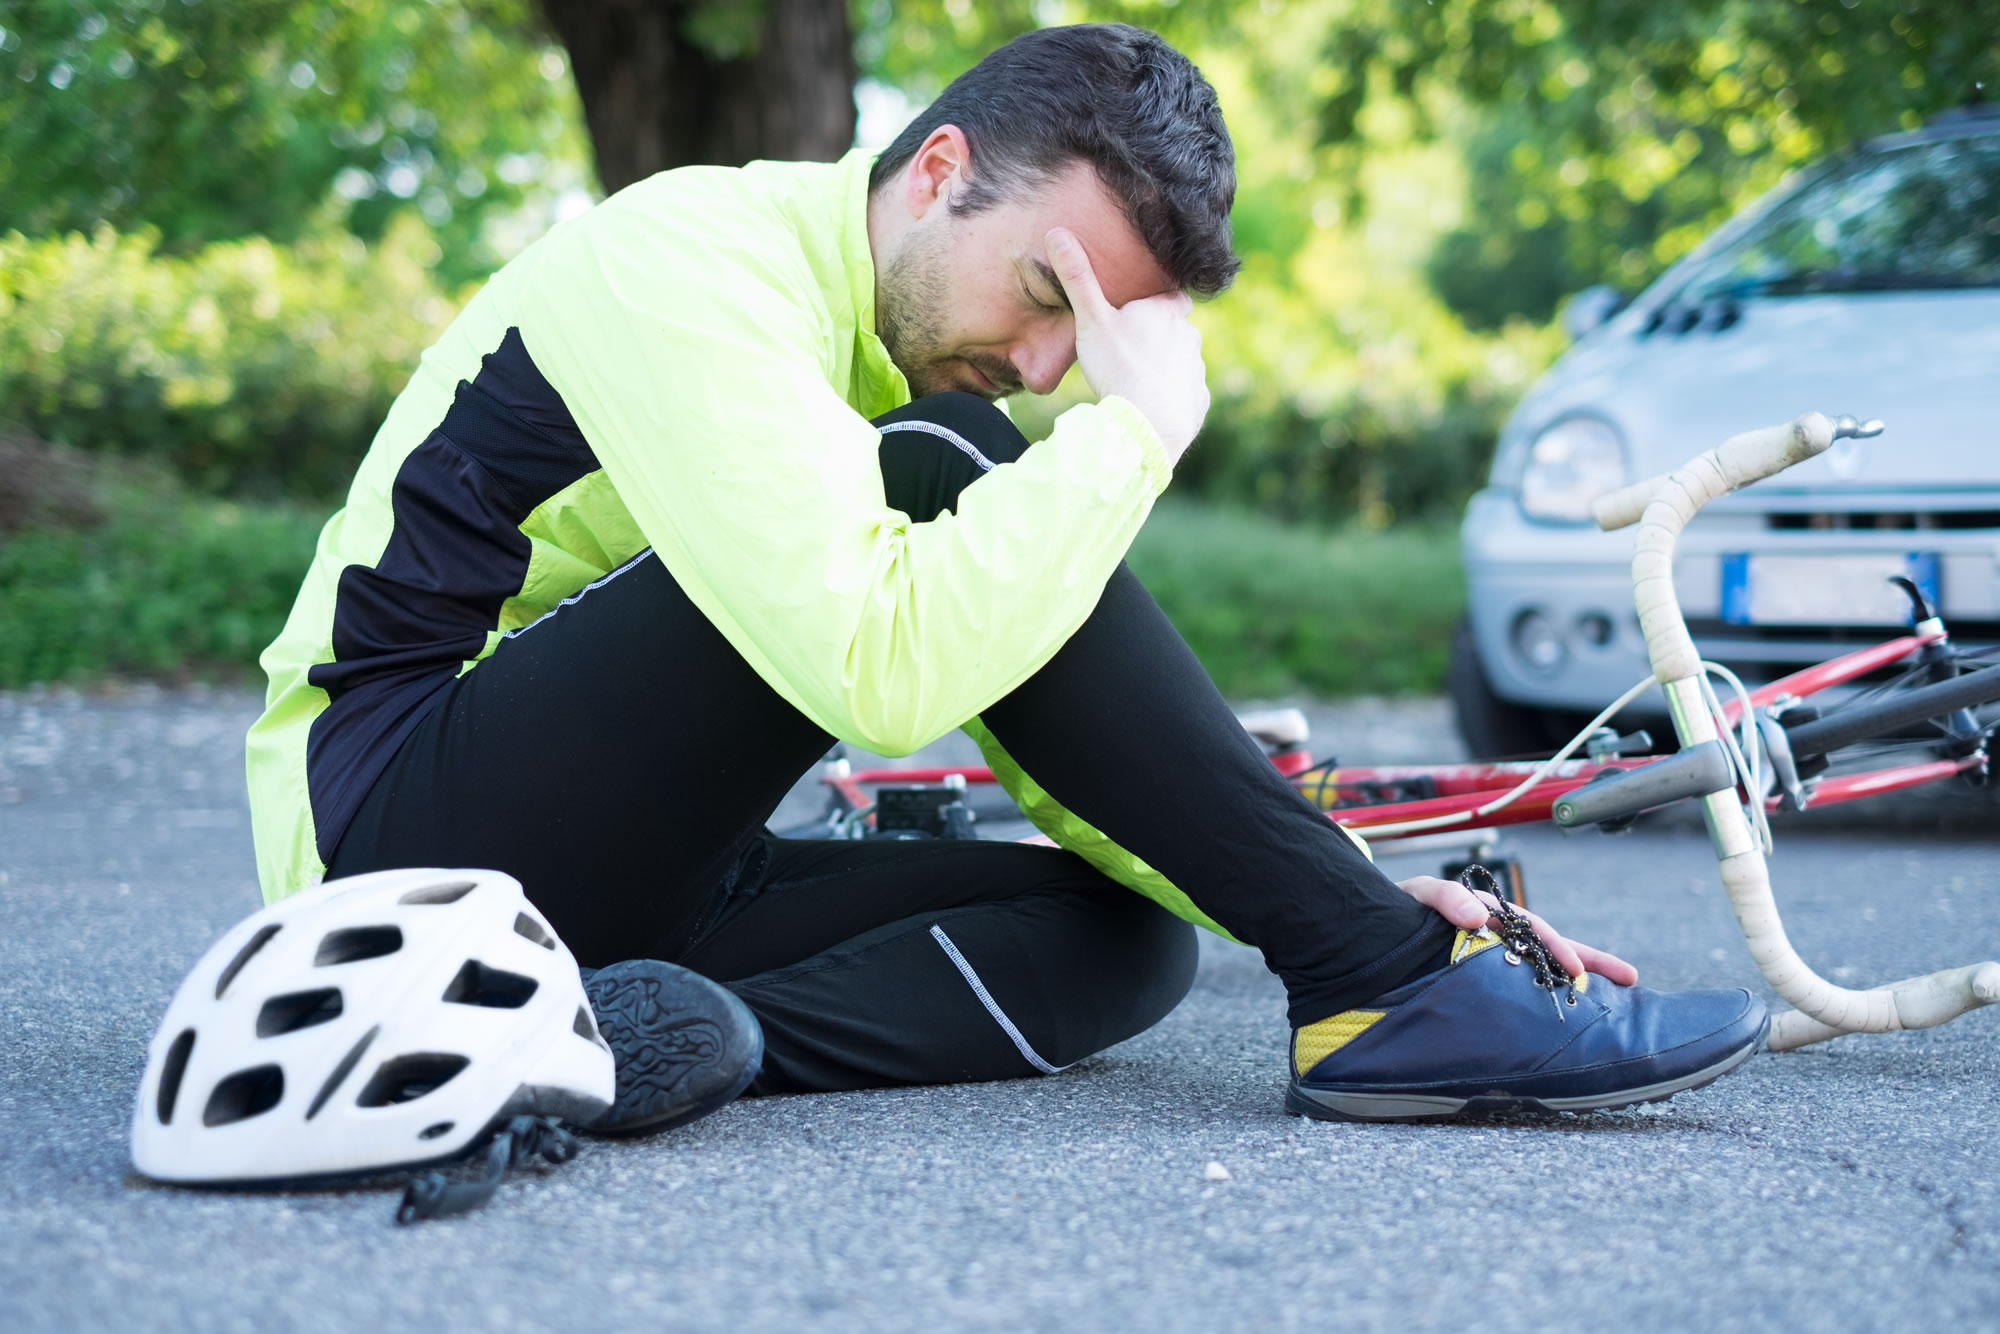 Bicycle Crash Compensation - Accident Claim Specialists / No Win, No Fee / Accident Claims UK